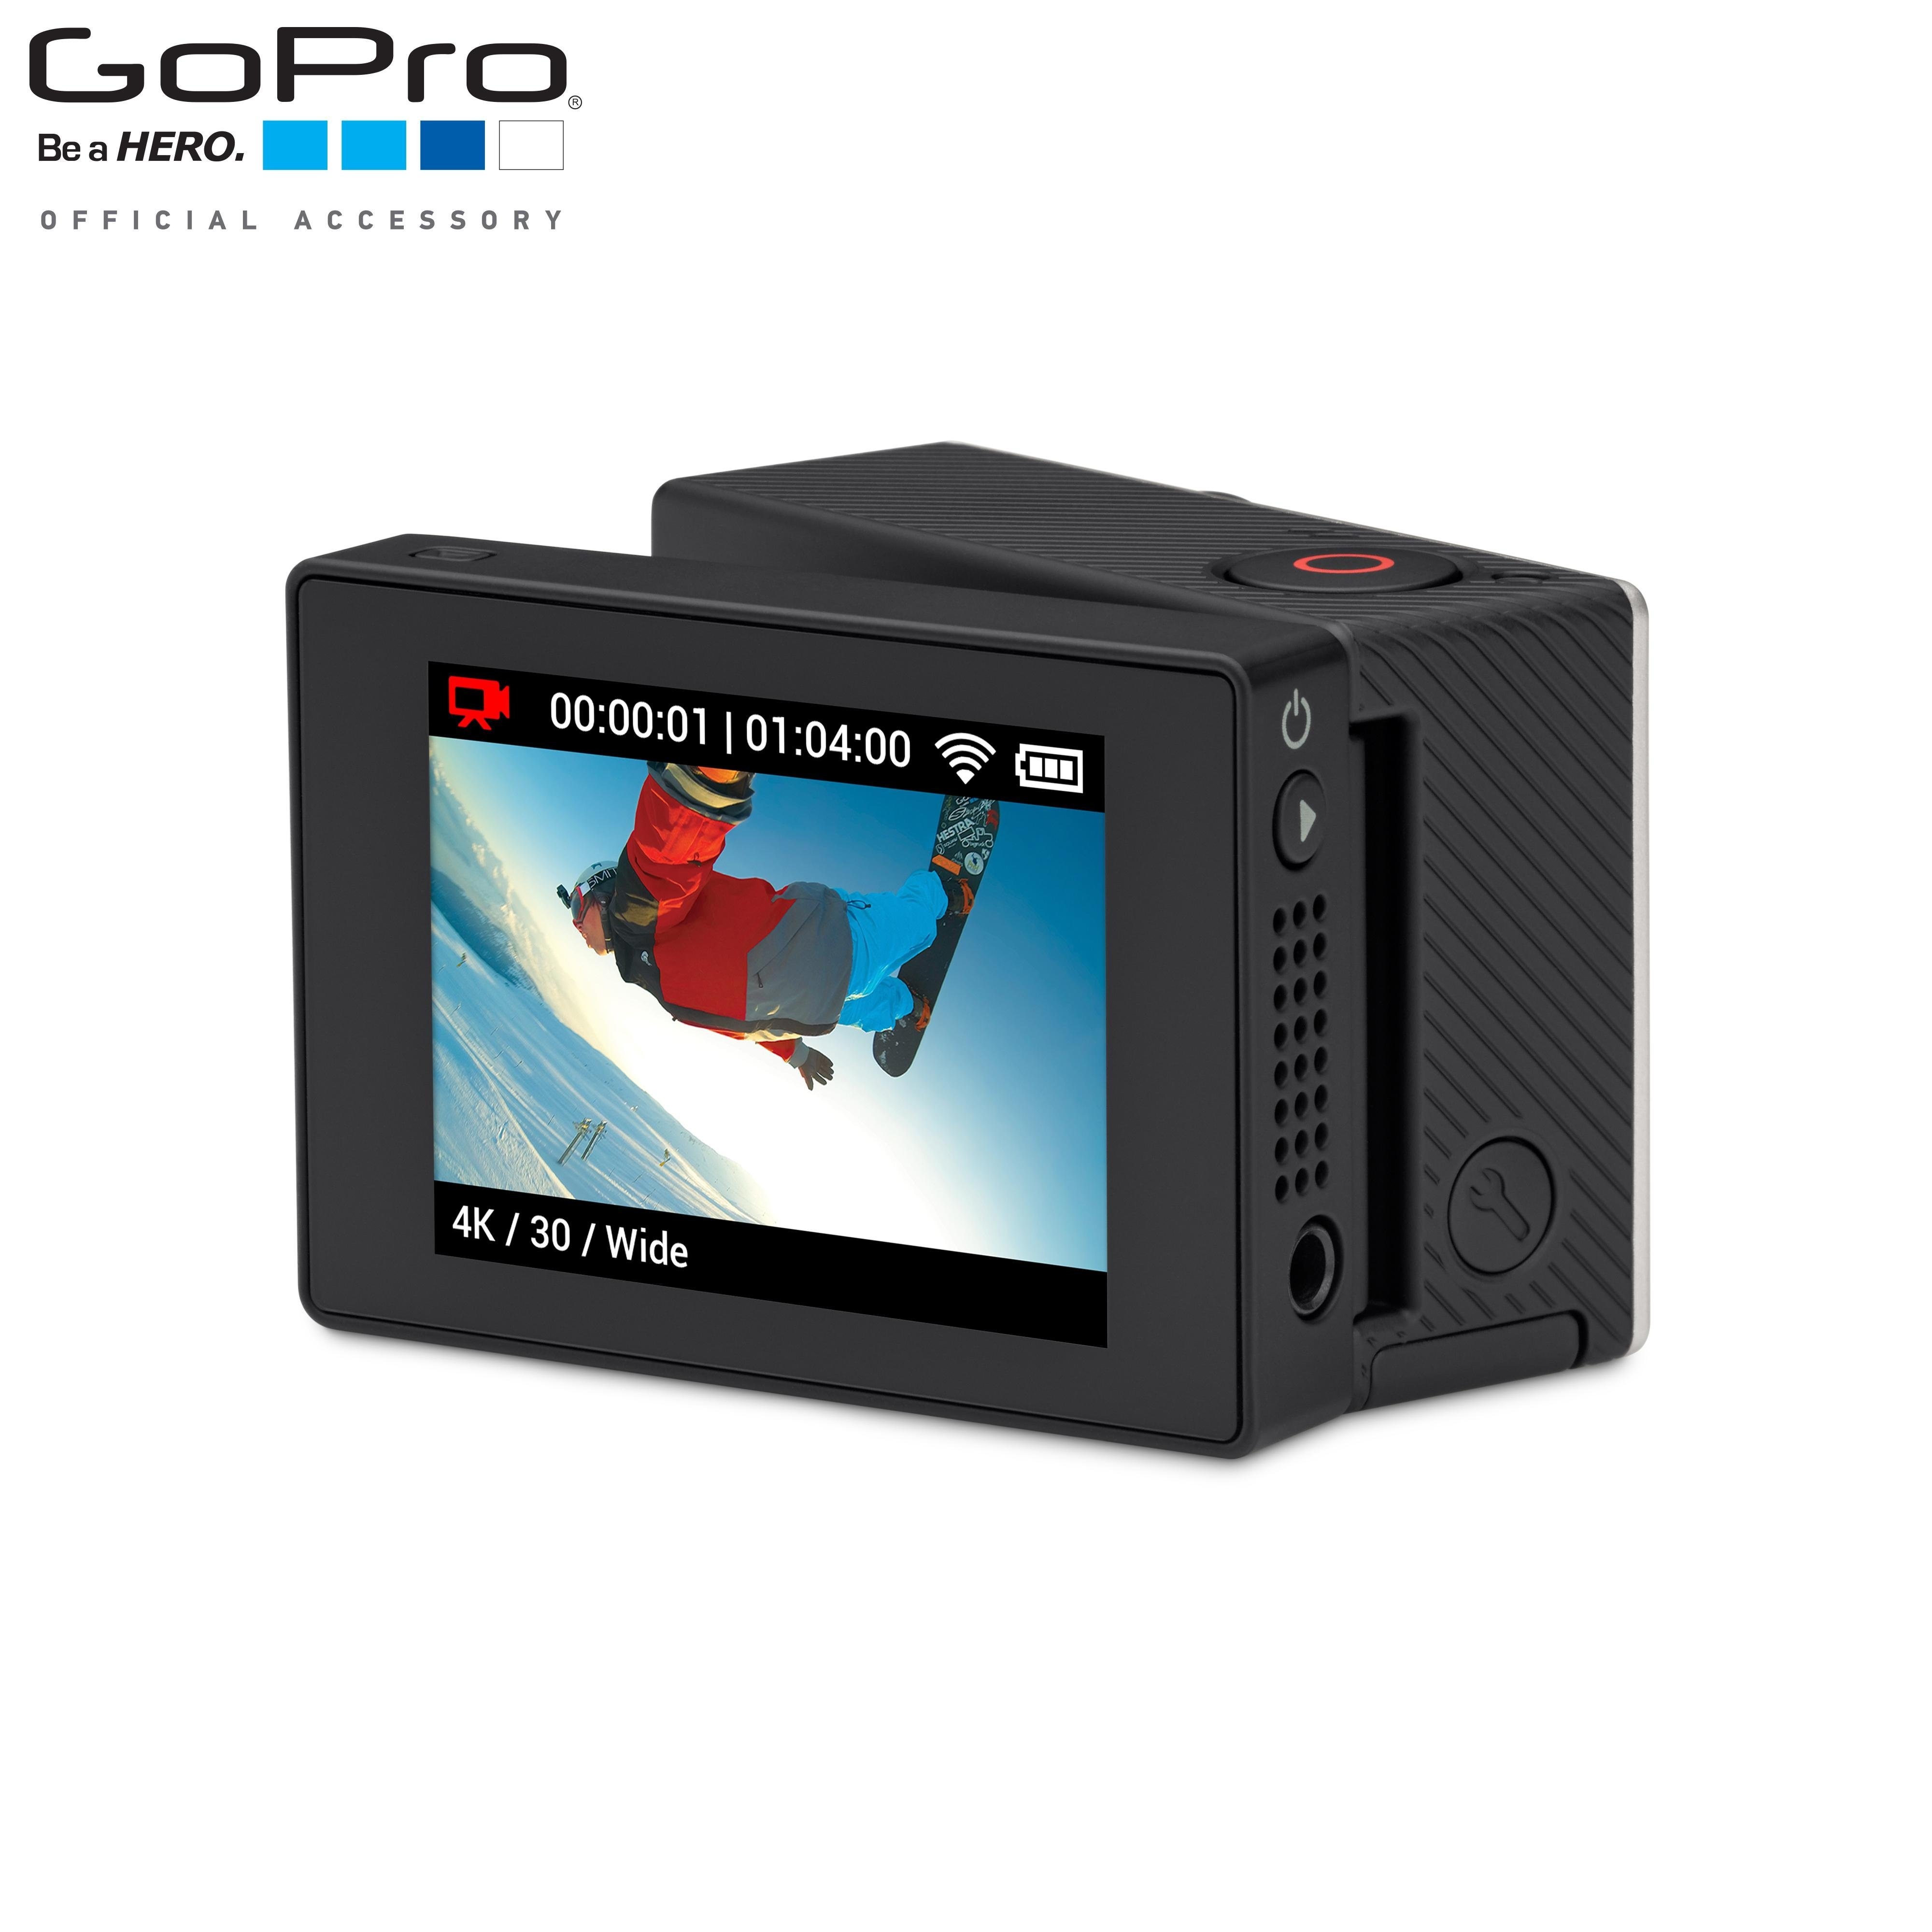 Gopro Lcd Touch Bacpac Extension Cable Bundle Blackout Housing 3rd Party For Hero3 Hero4 View Larger